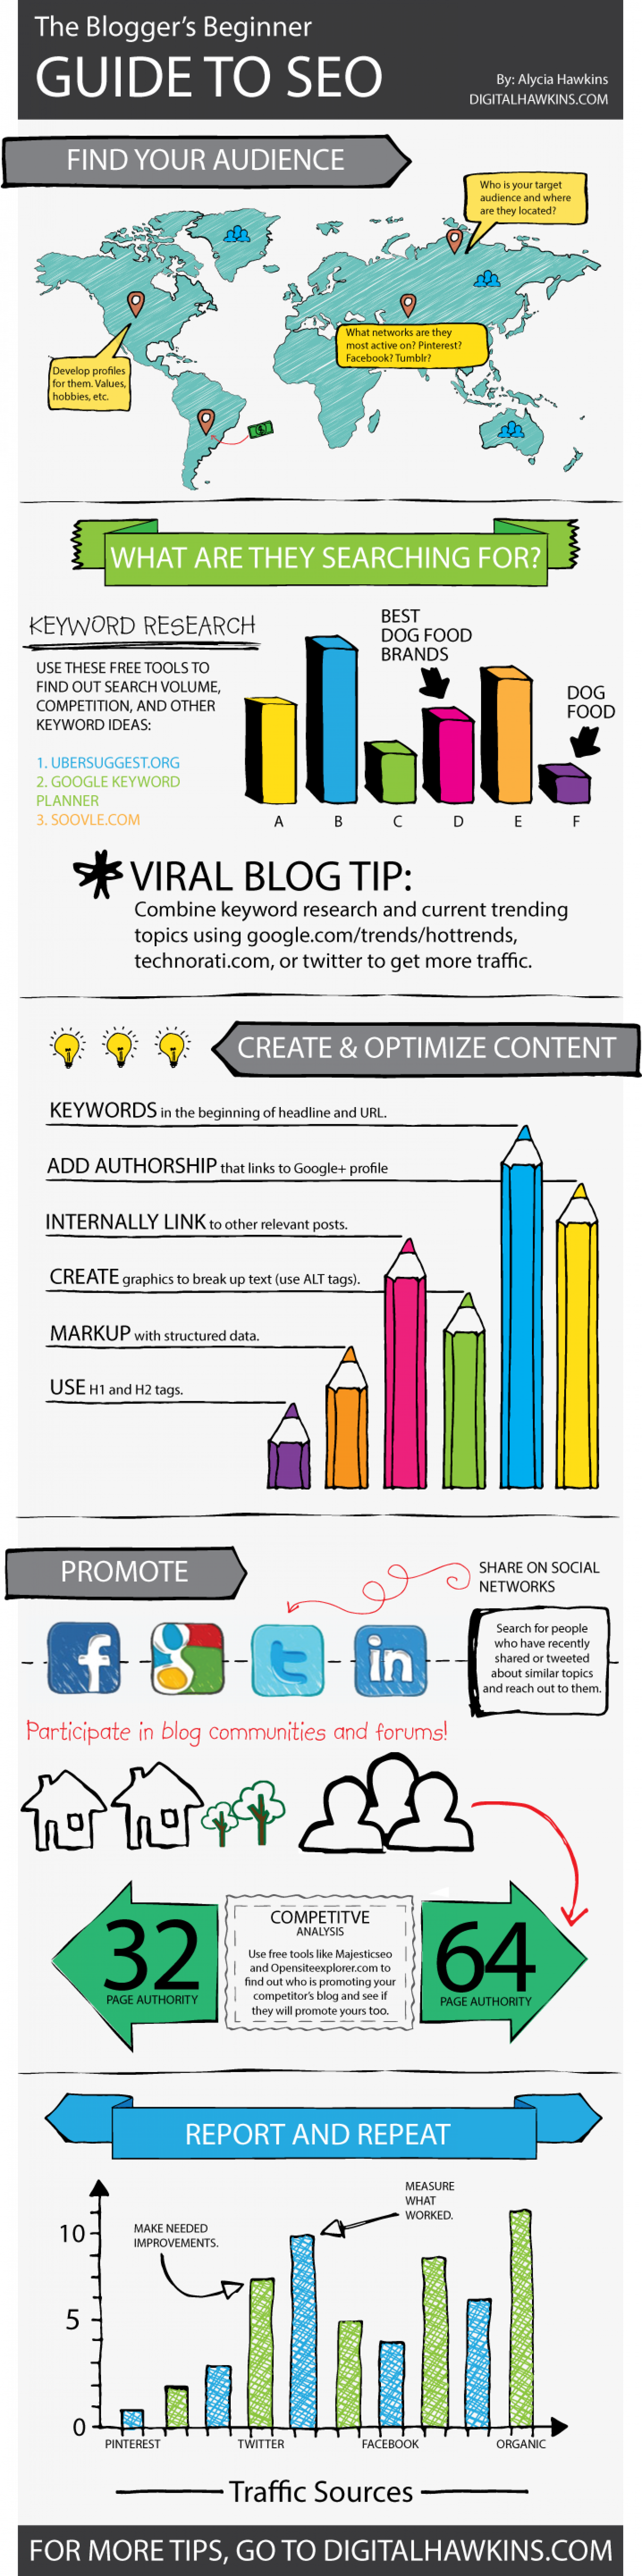 The Blogger's Beginner Guide to SEO Infographic